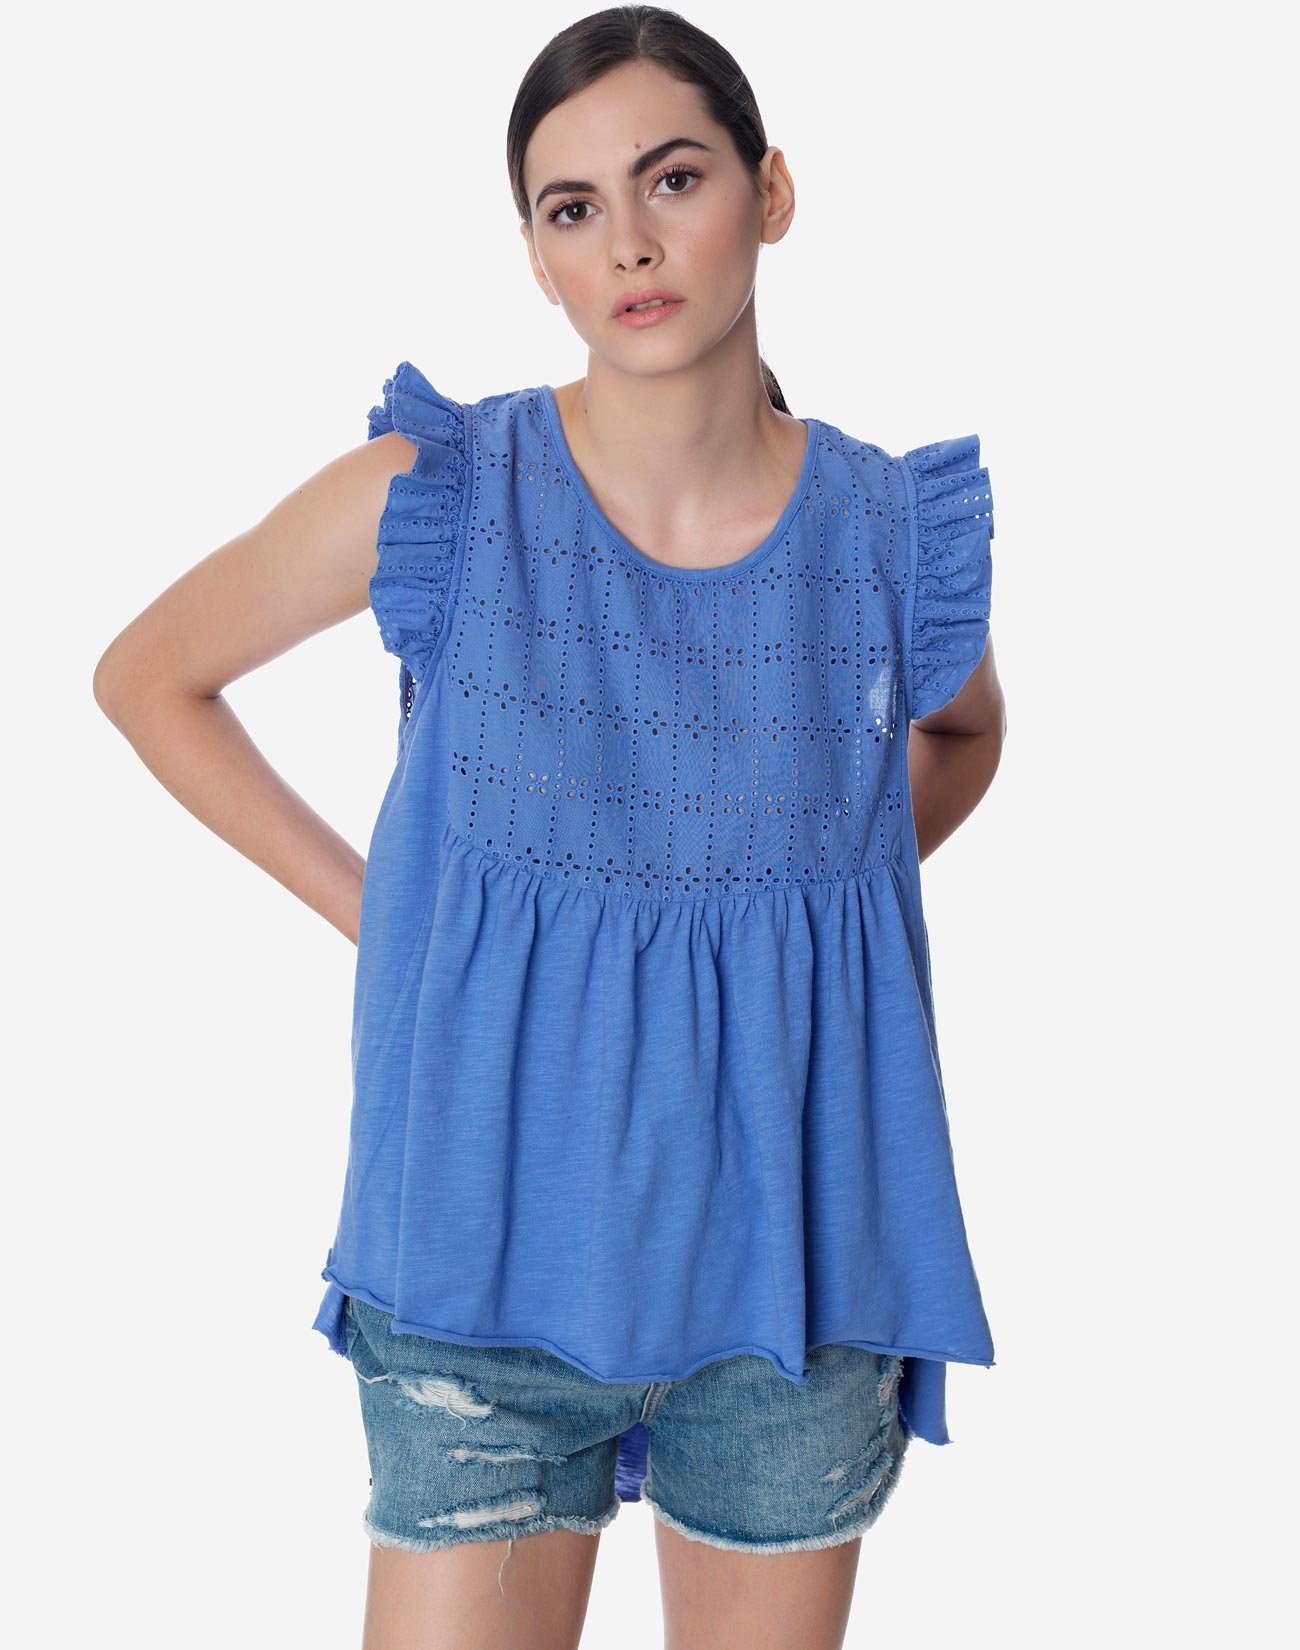 Asymmetric ruffled top with broderie